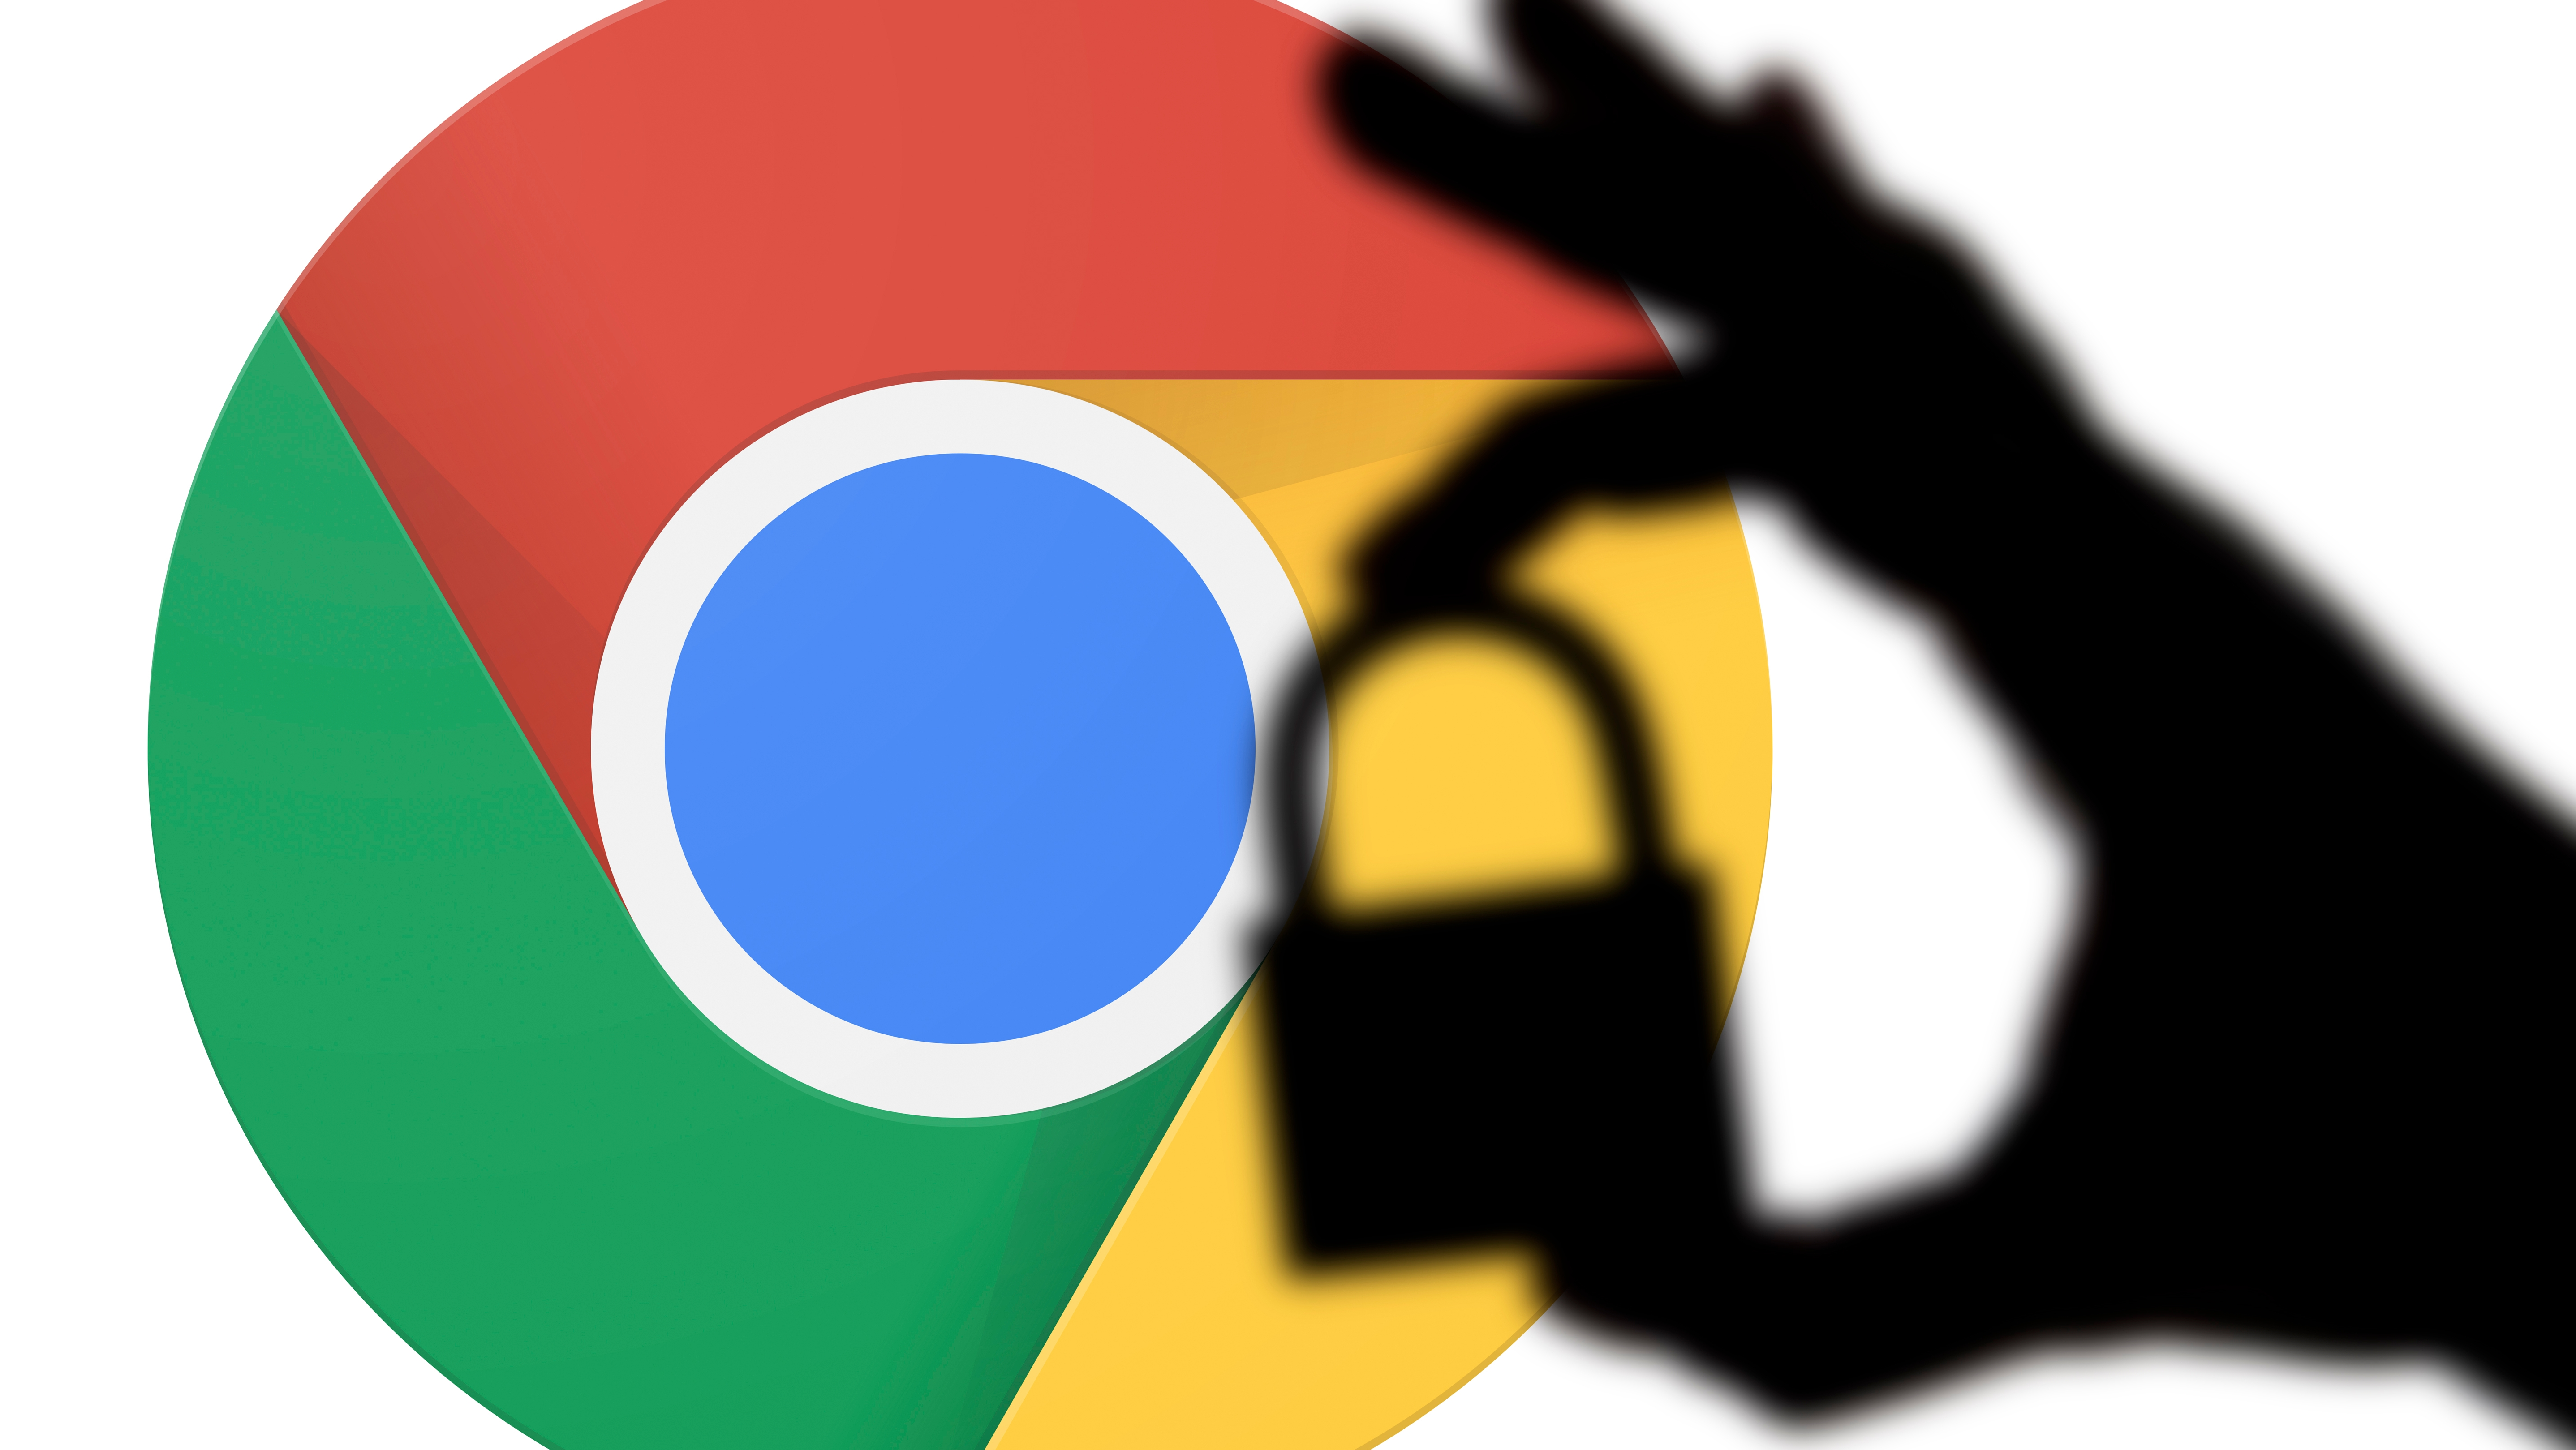 Google brings in new privacy policies to make Chrome